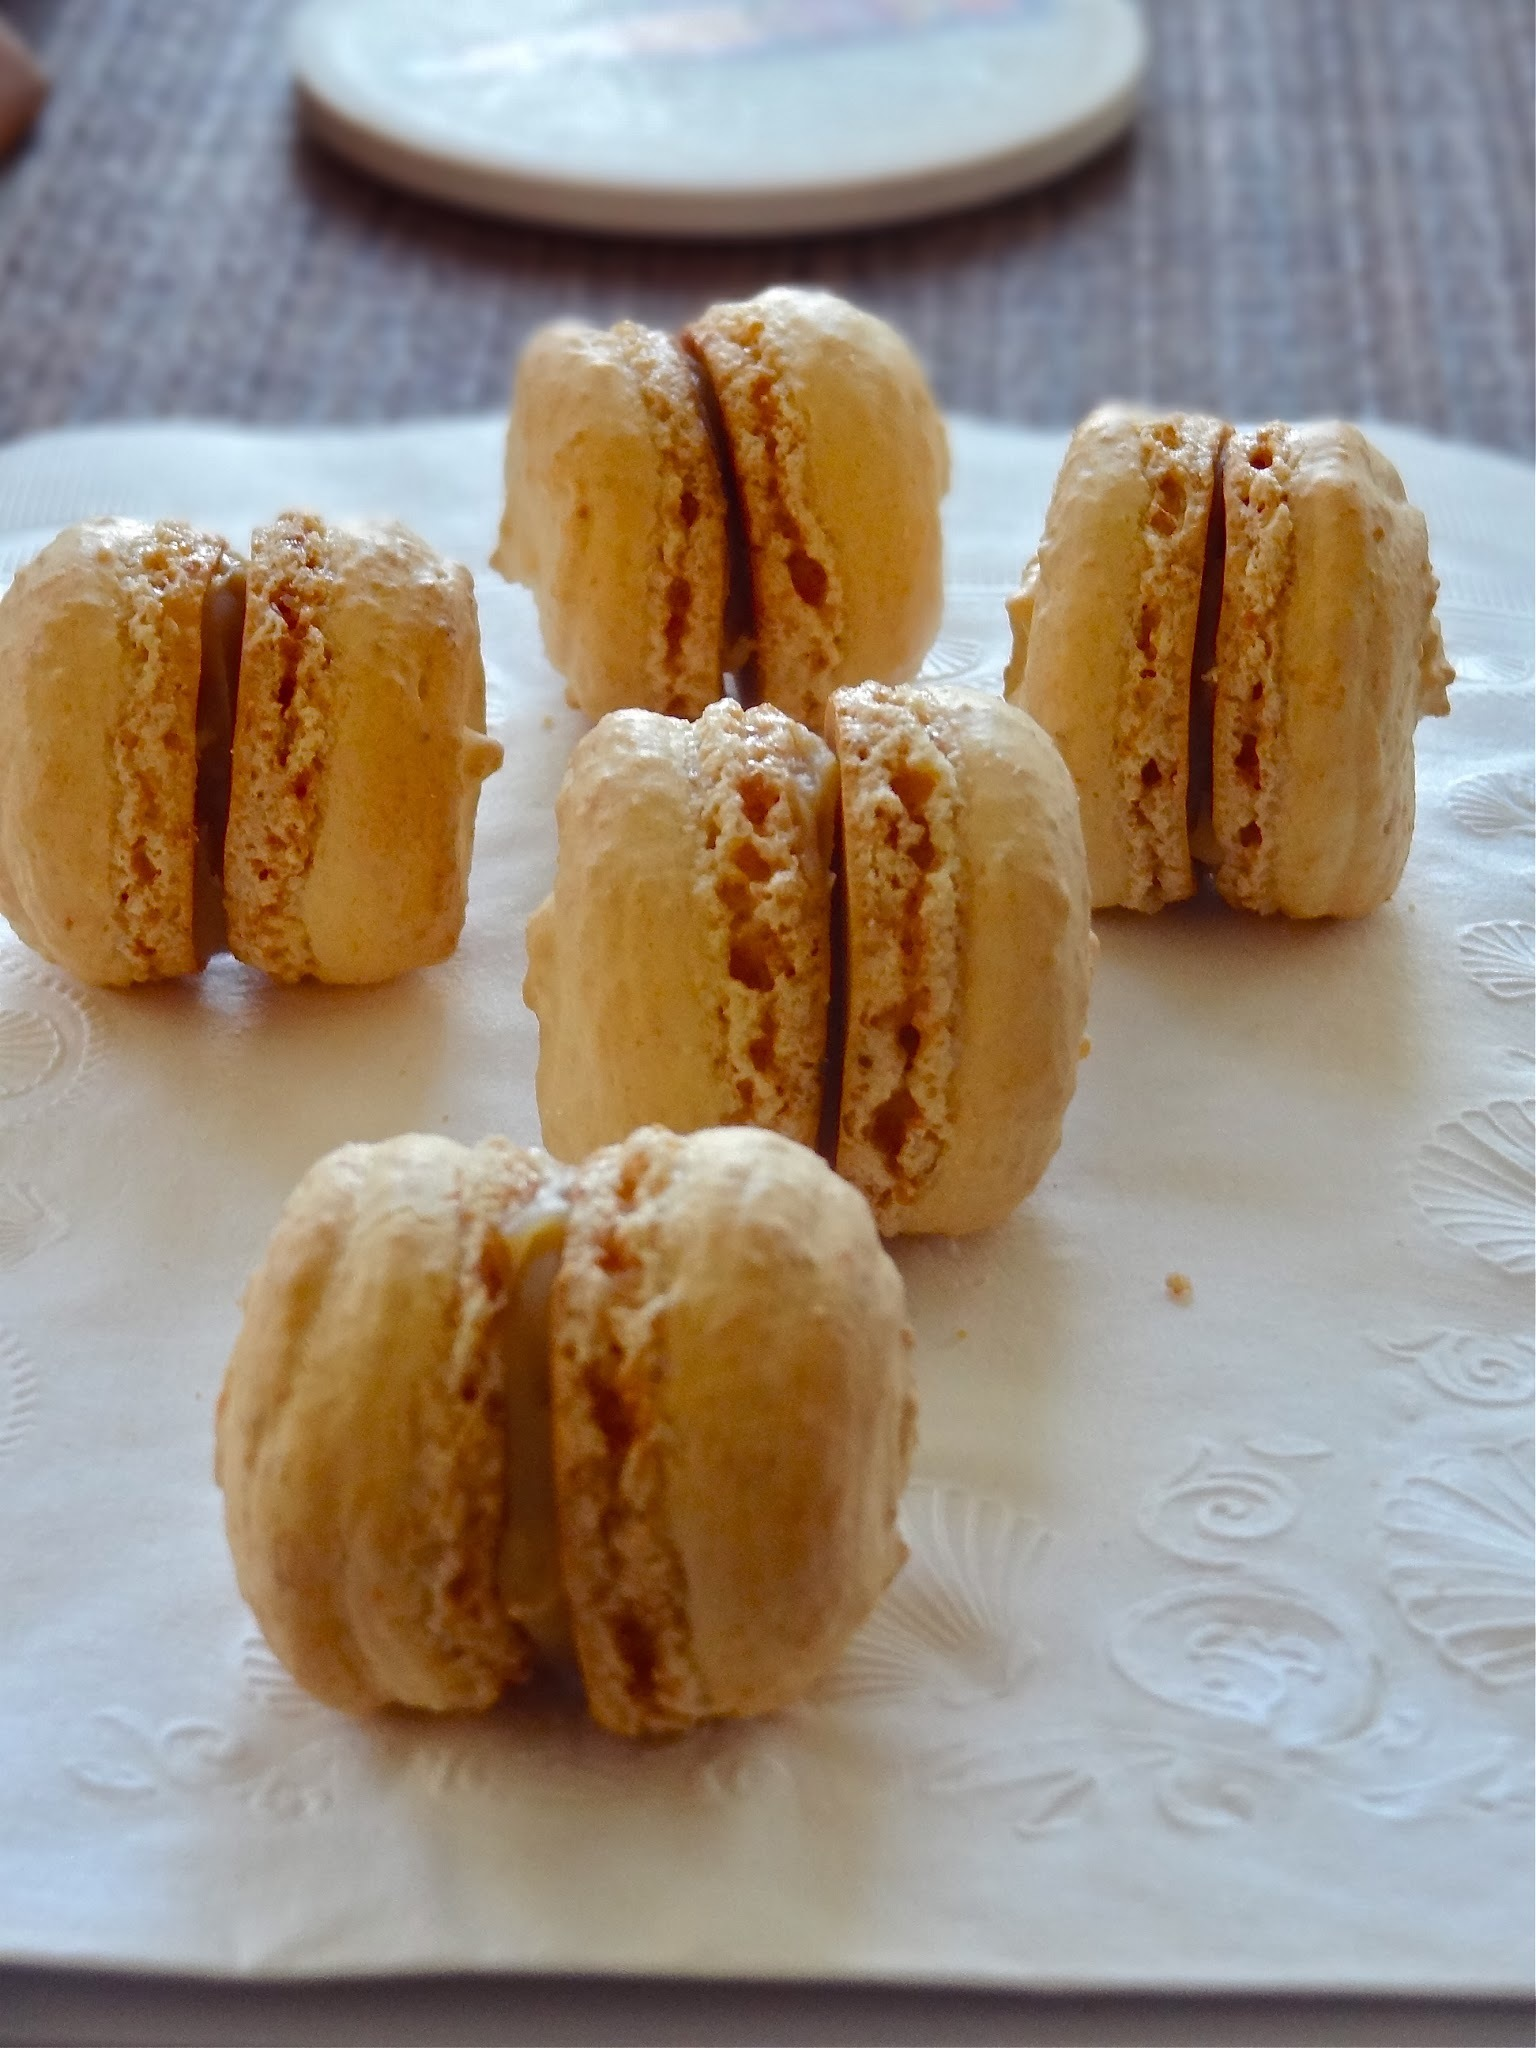 Peanut butter and jam macarons